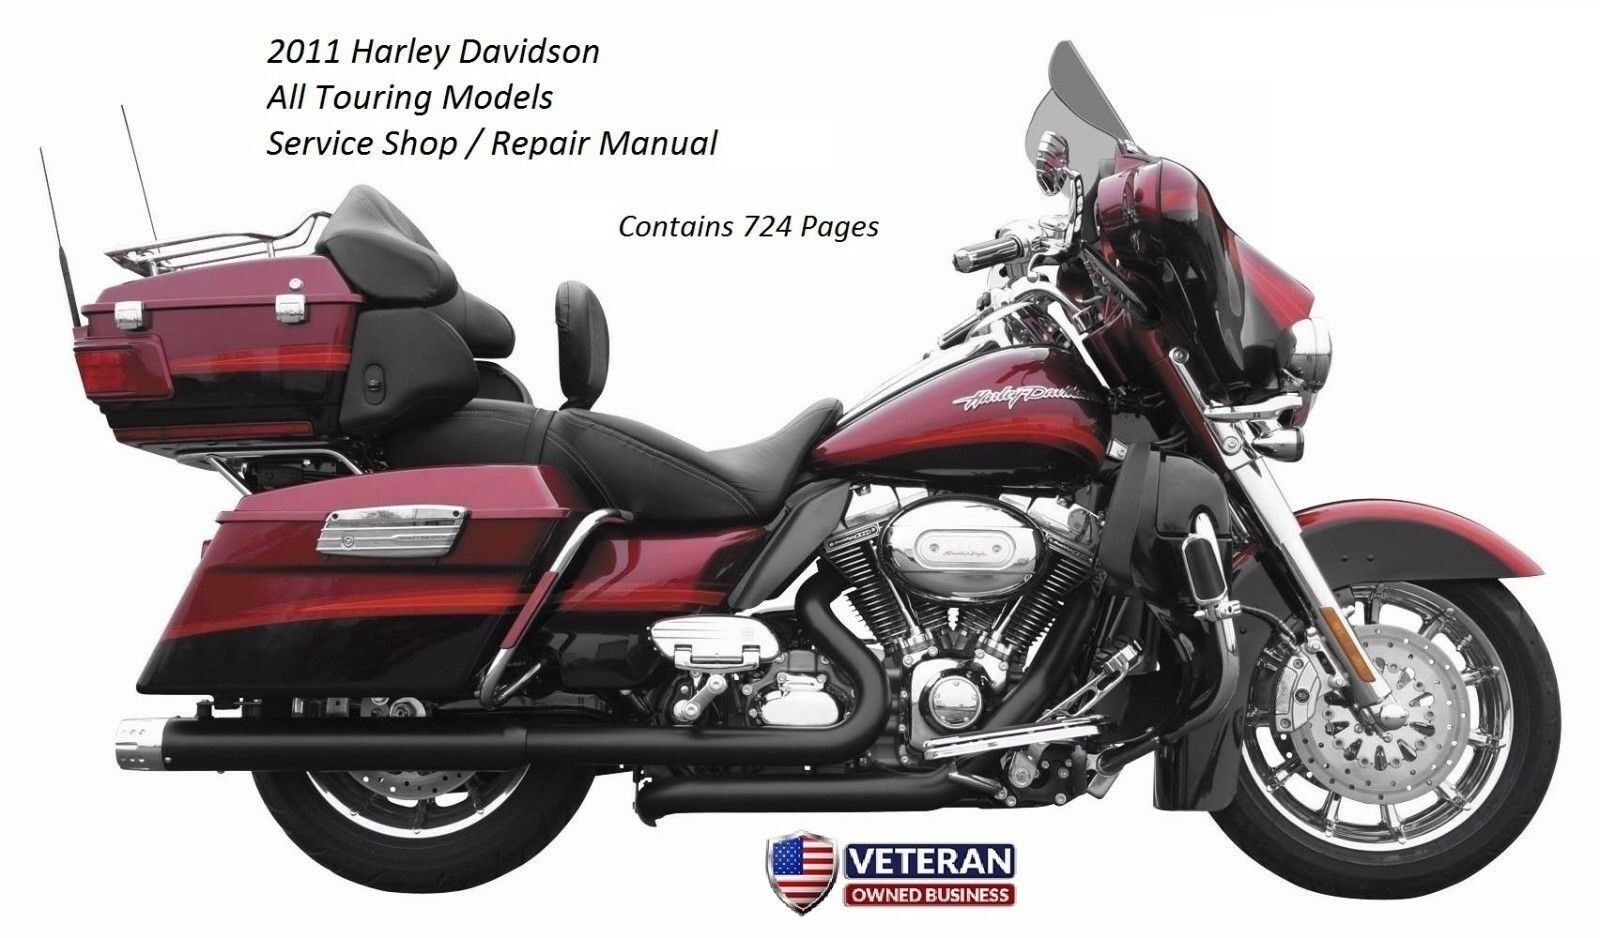 2011 Harley Davidson Touring Factory OEM Service Shop & Repair CD Manual 1  of 8Only 2 available ...